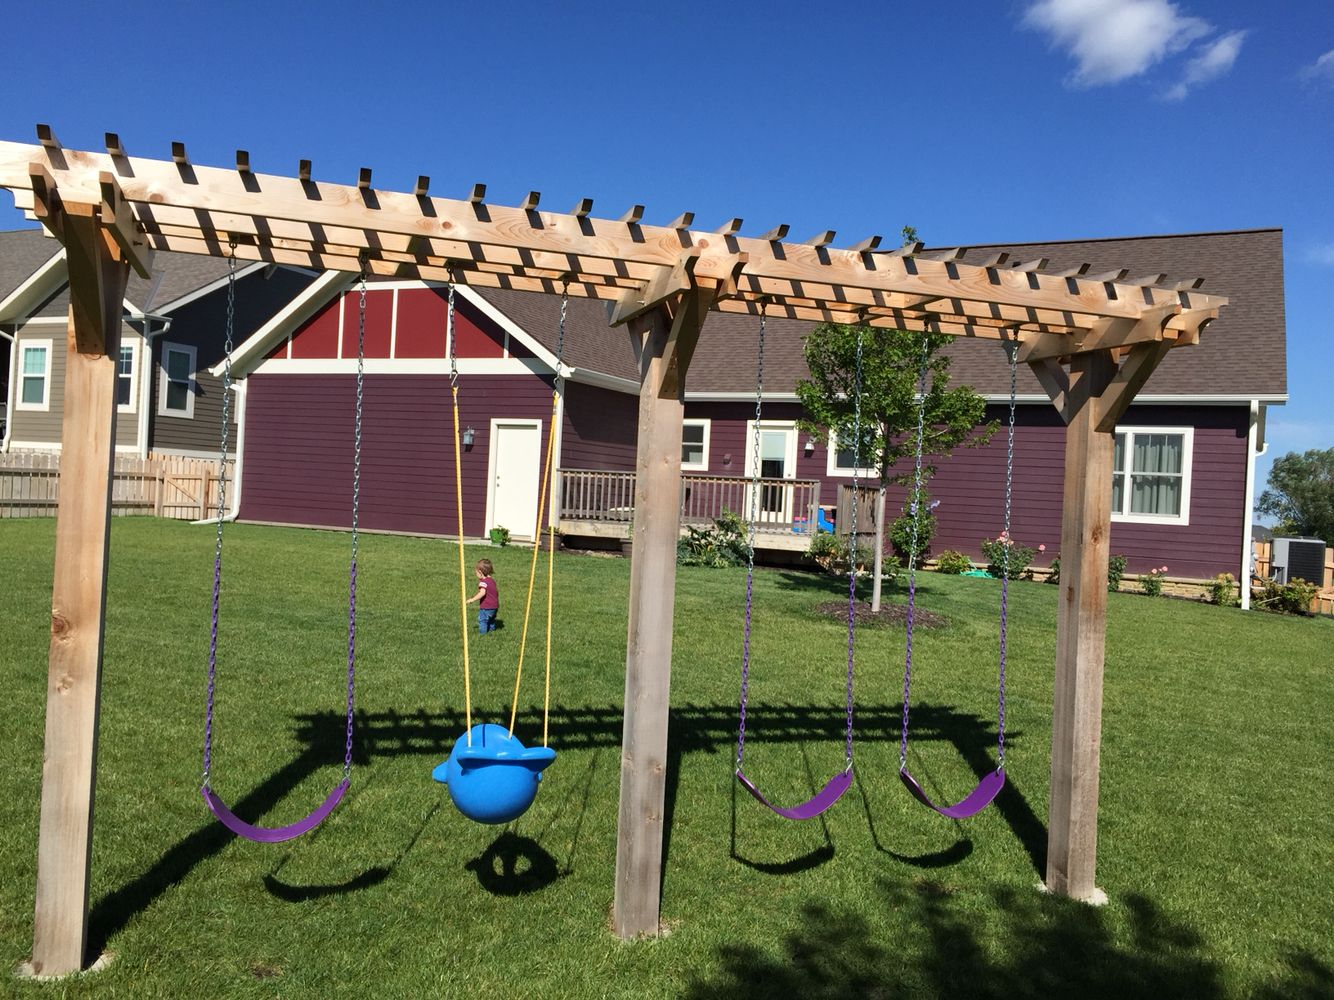 60 Swing Sets Ideas That Would Be Awesome Enjoy Your Time regarding 12 Smart Ideas How to Upgrade Backyard Swing Set Ideas